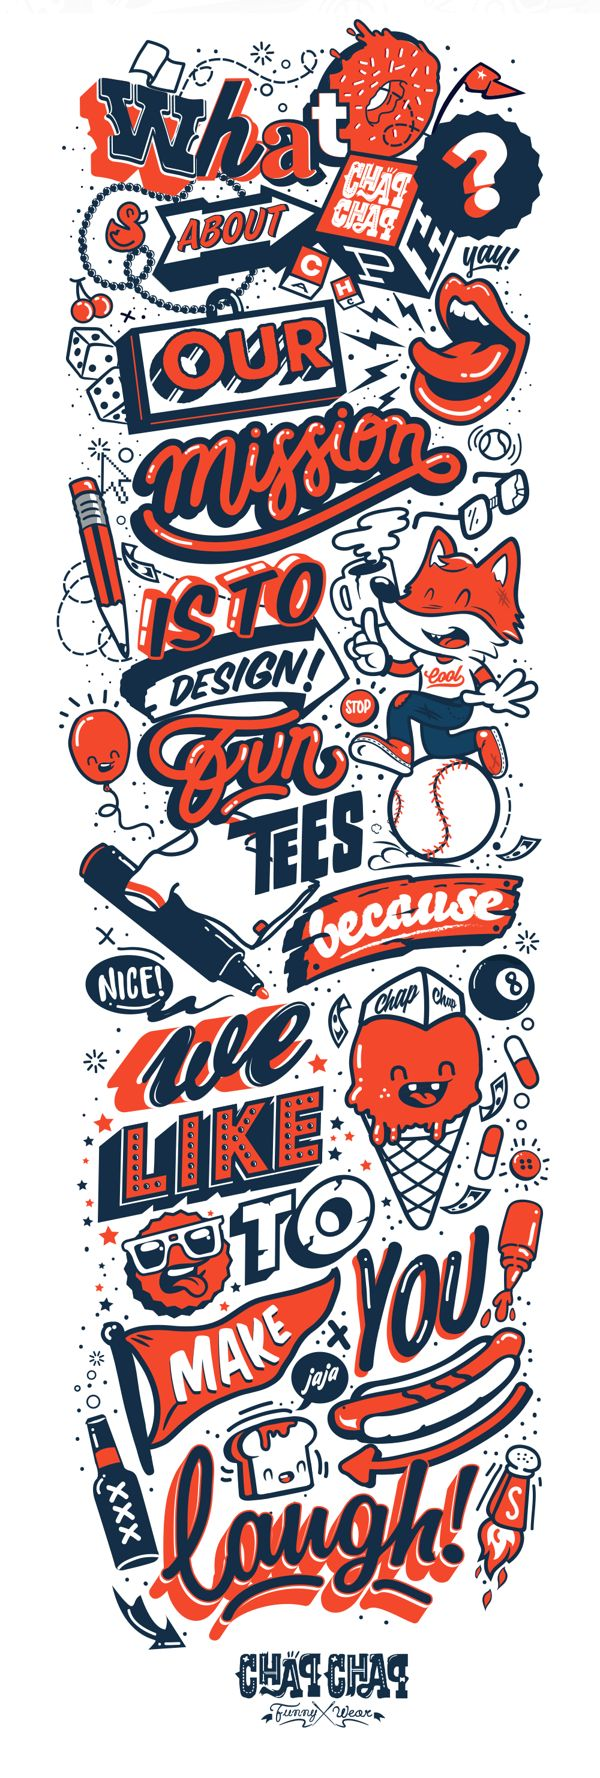 Mission Chap Chap Funny Wear on Behance